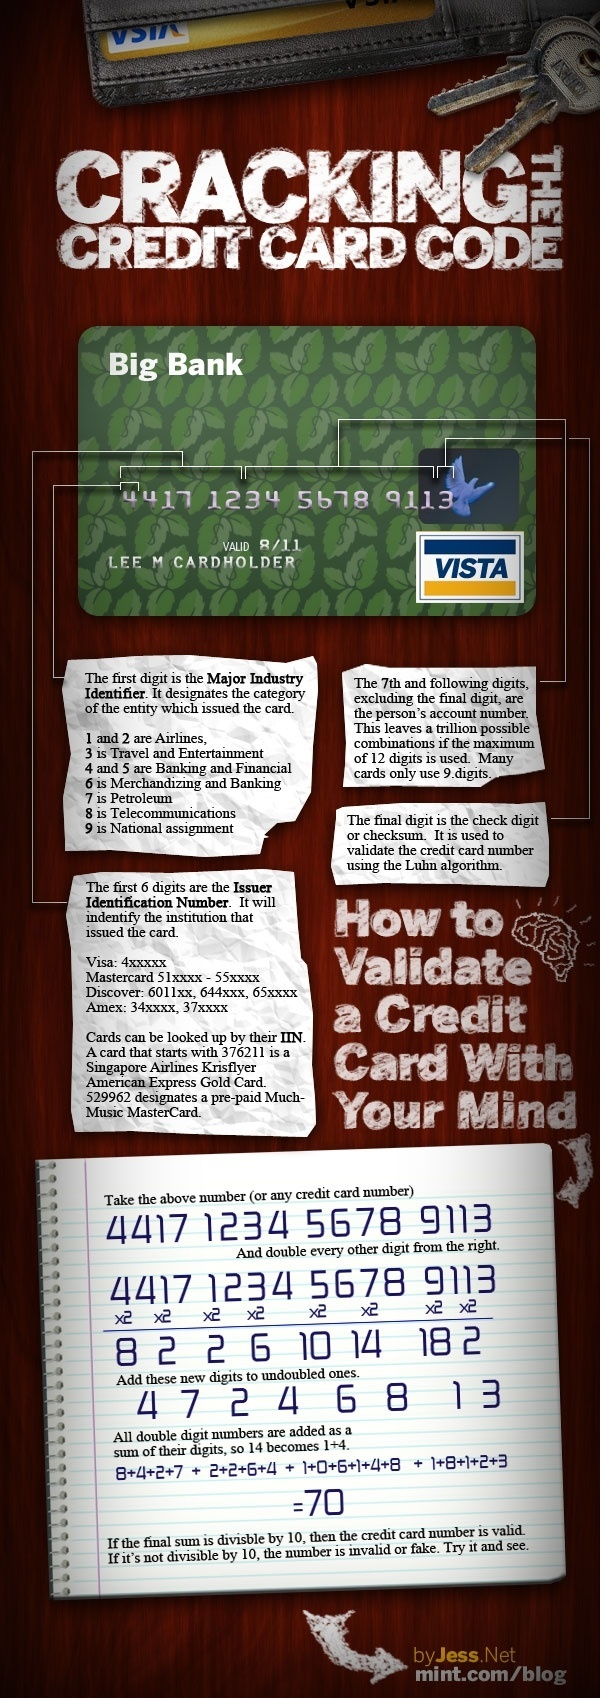 cracking credit card code infographic How to Crack a Credit Card